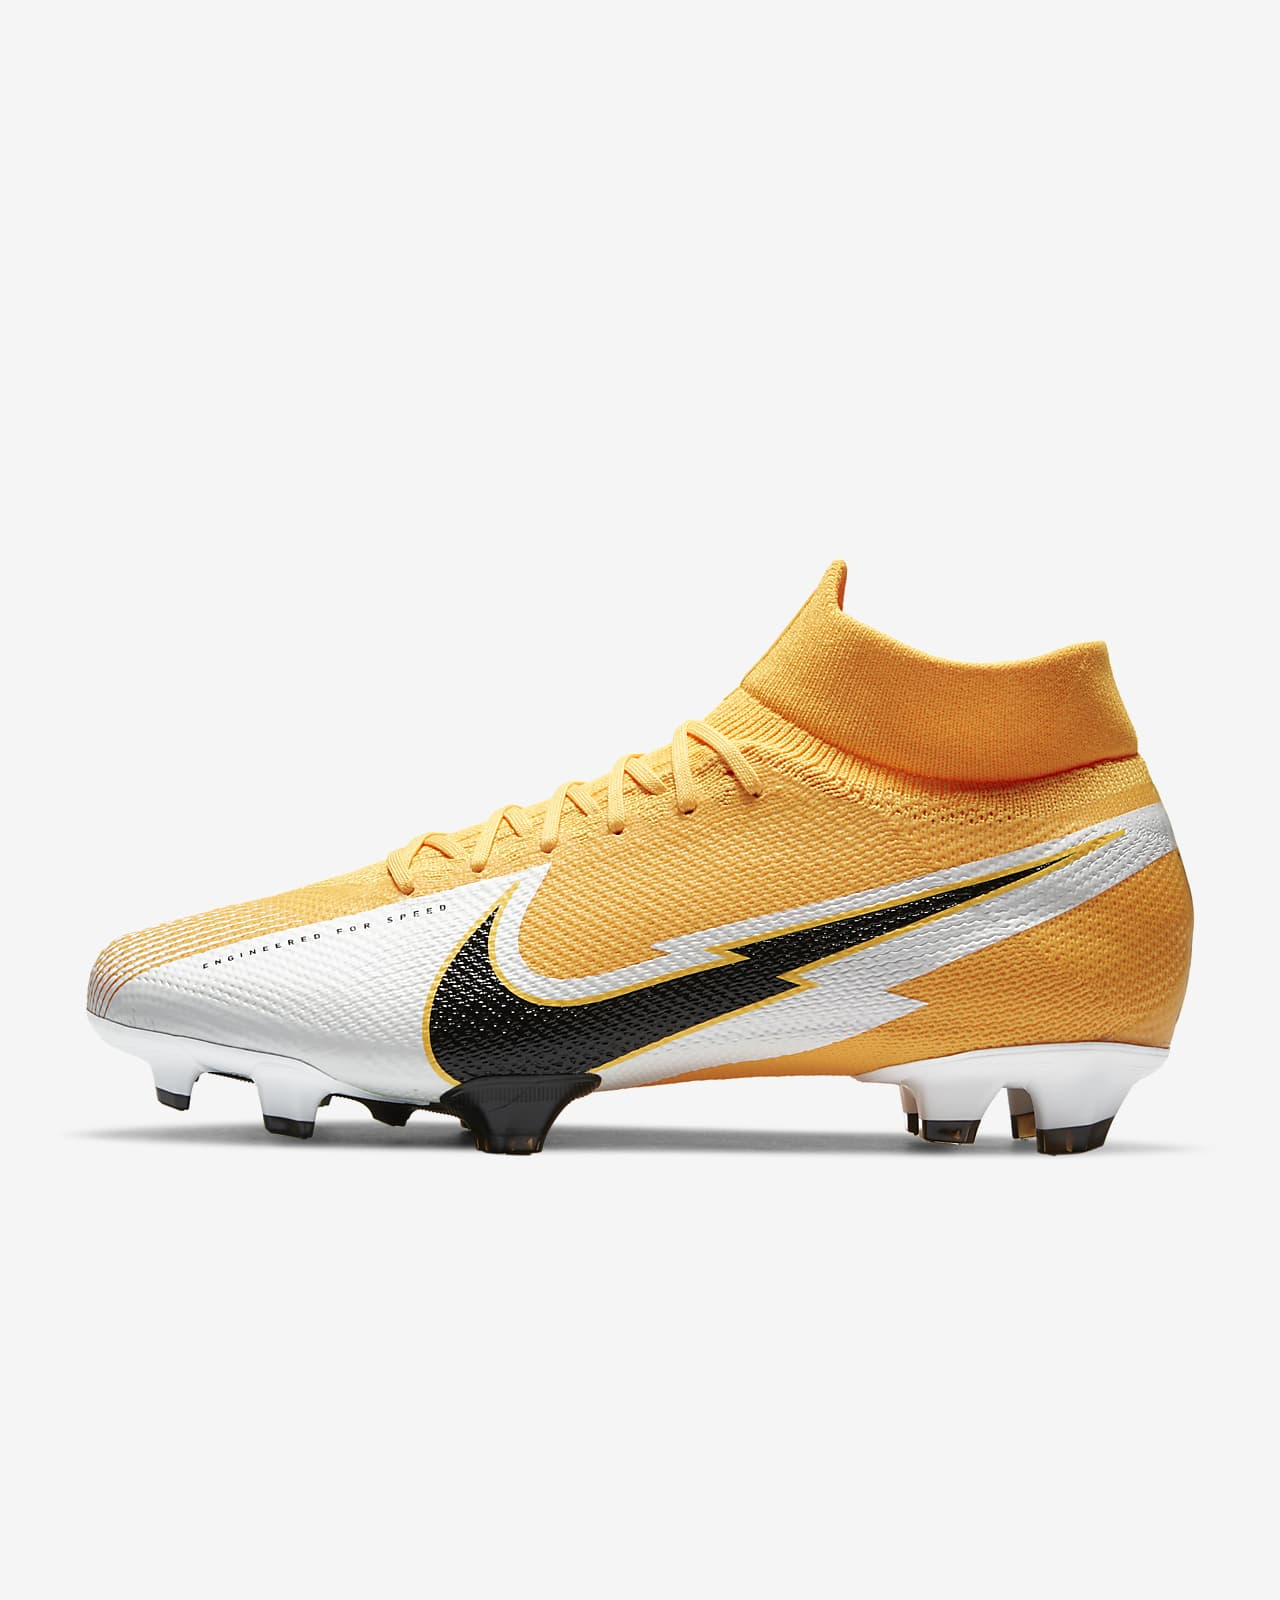 Nike Mercurial Superfly 7 Pro FG Firm